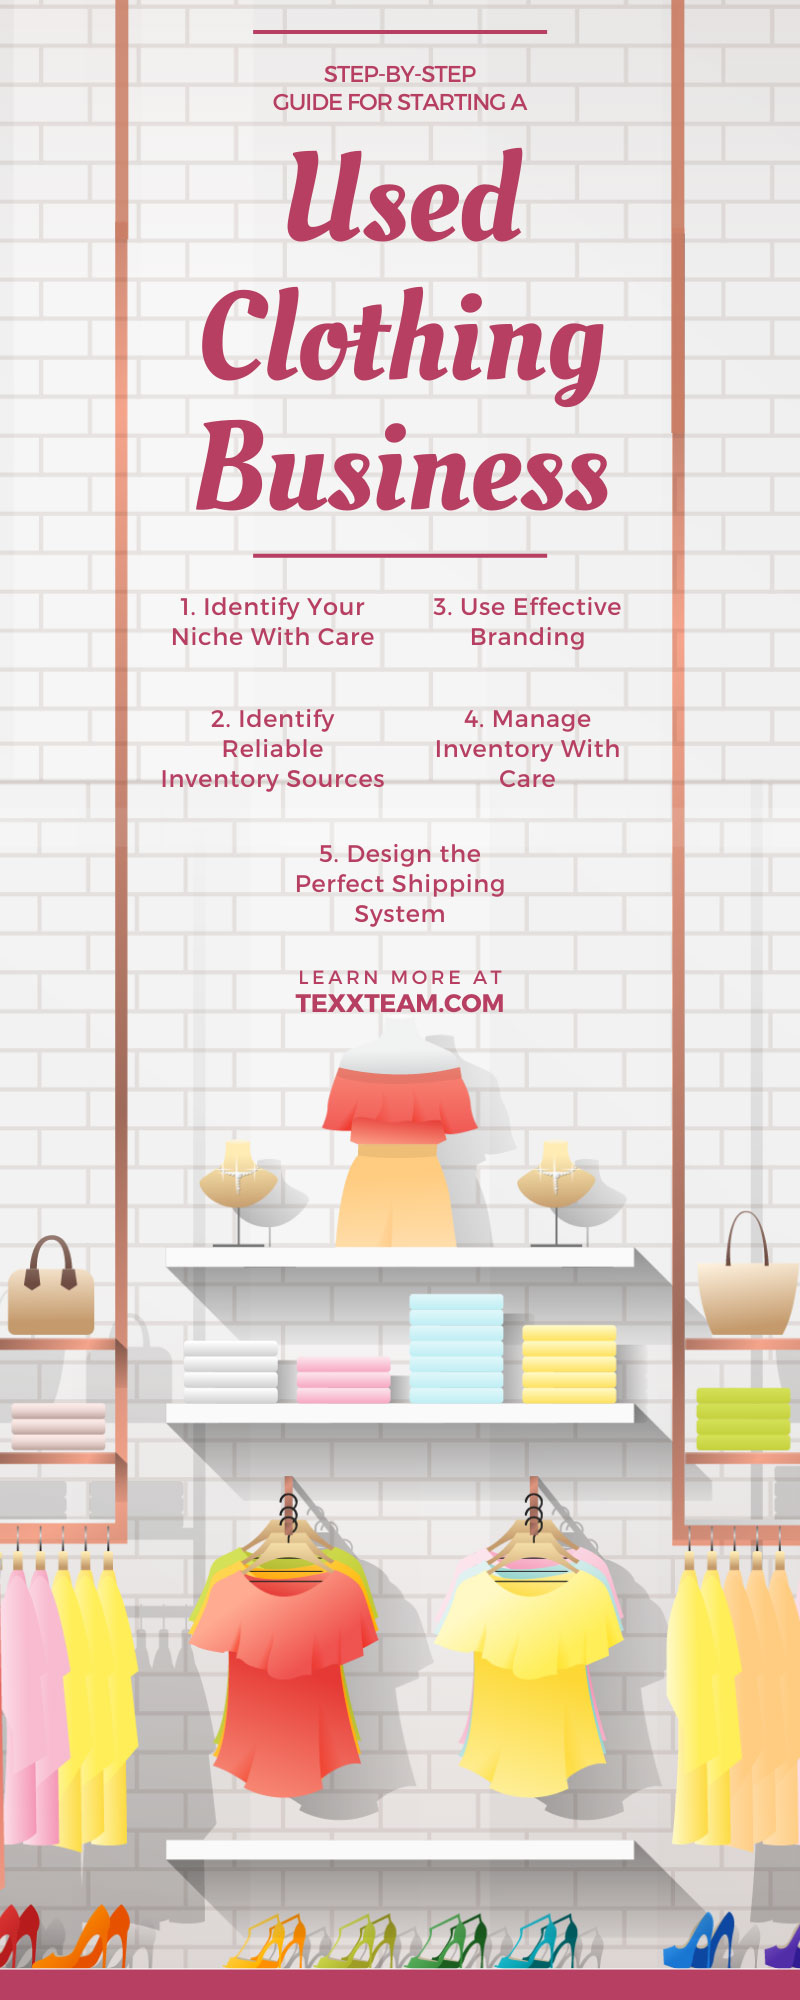 Starting a Used Clothes Business Infographic